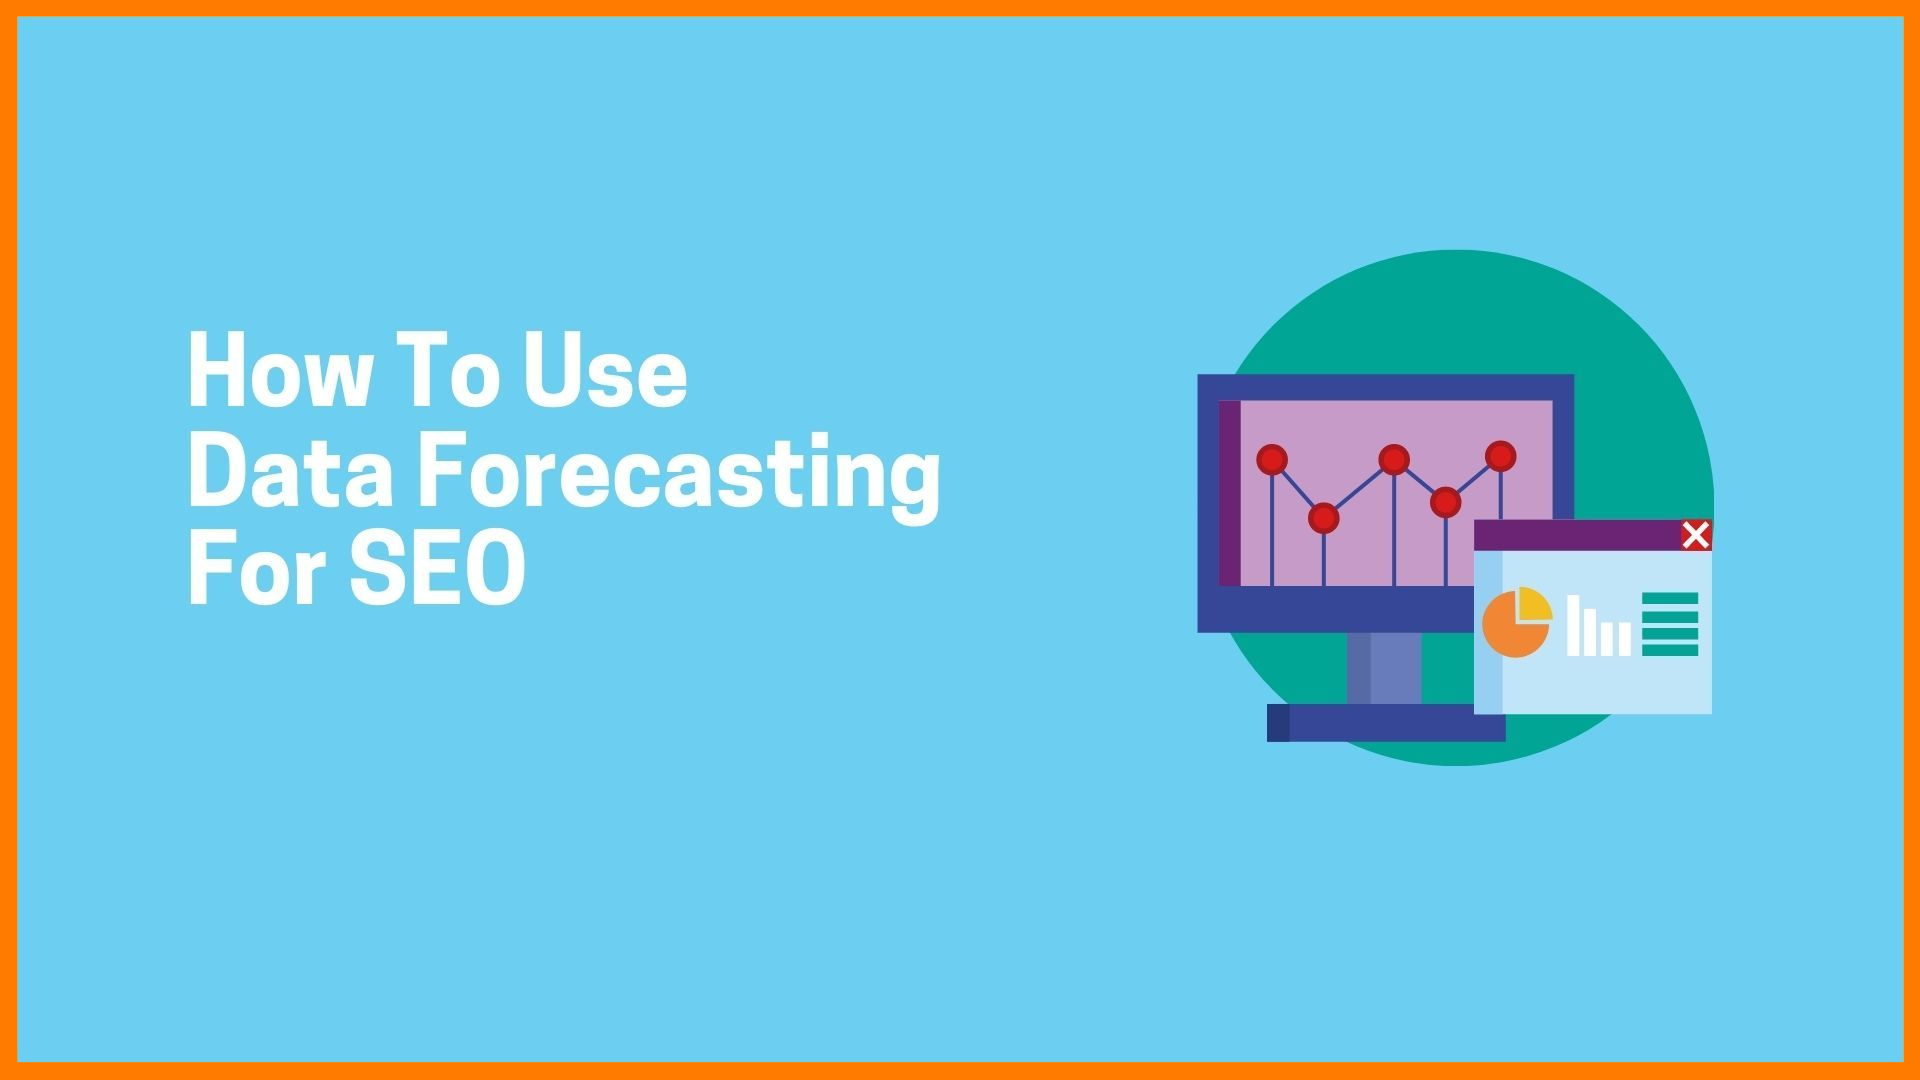 How To Use Data Forecasting For SEO